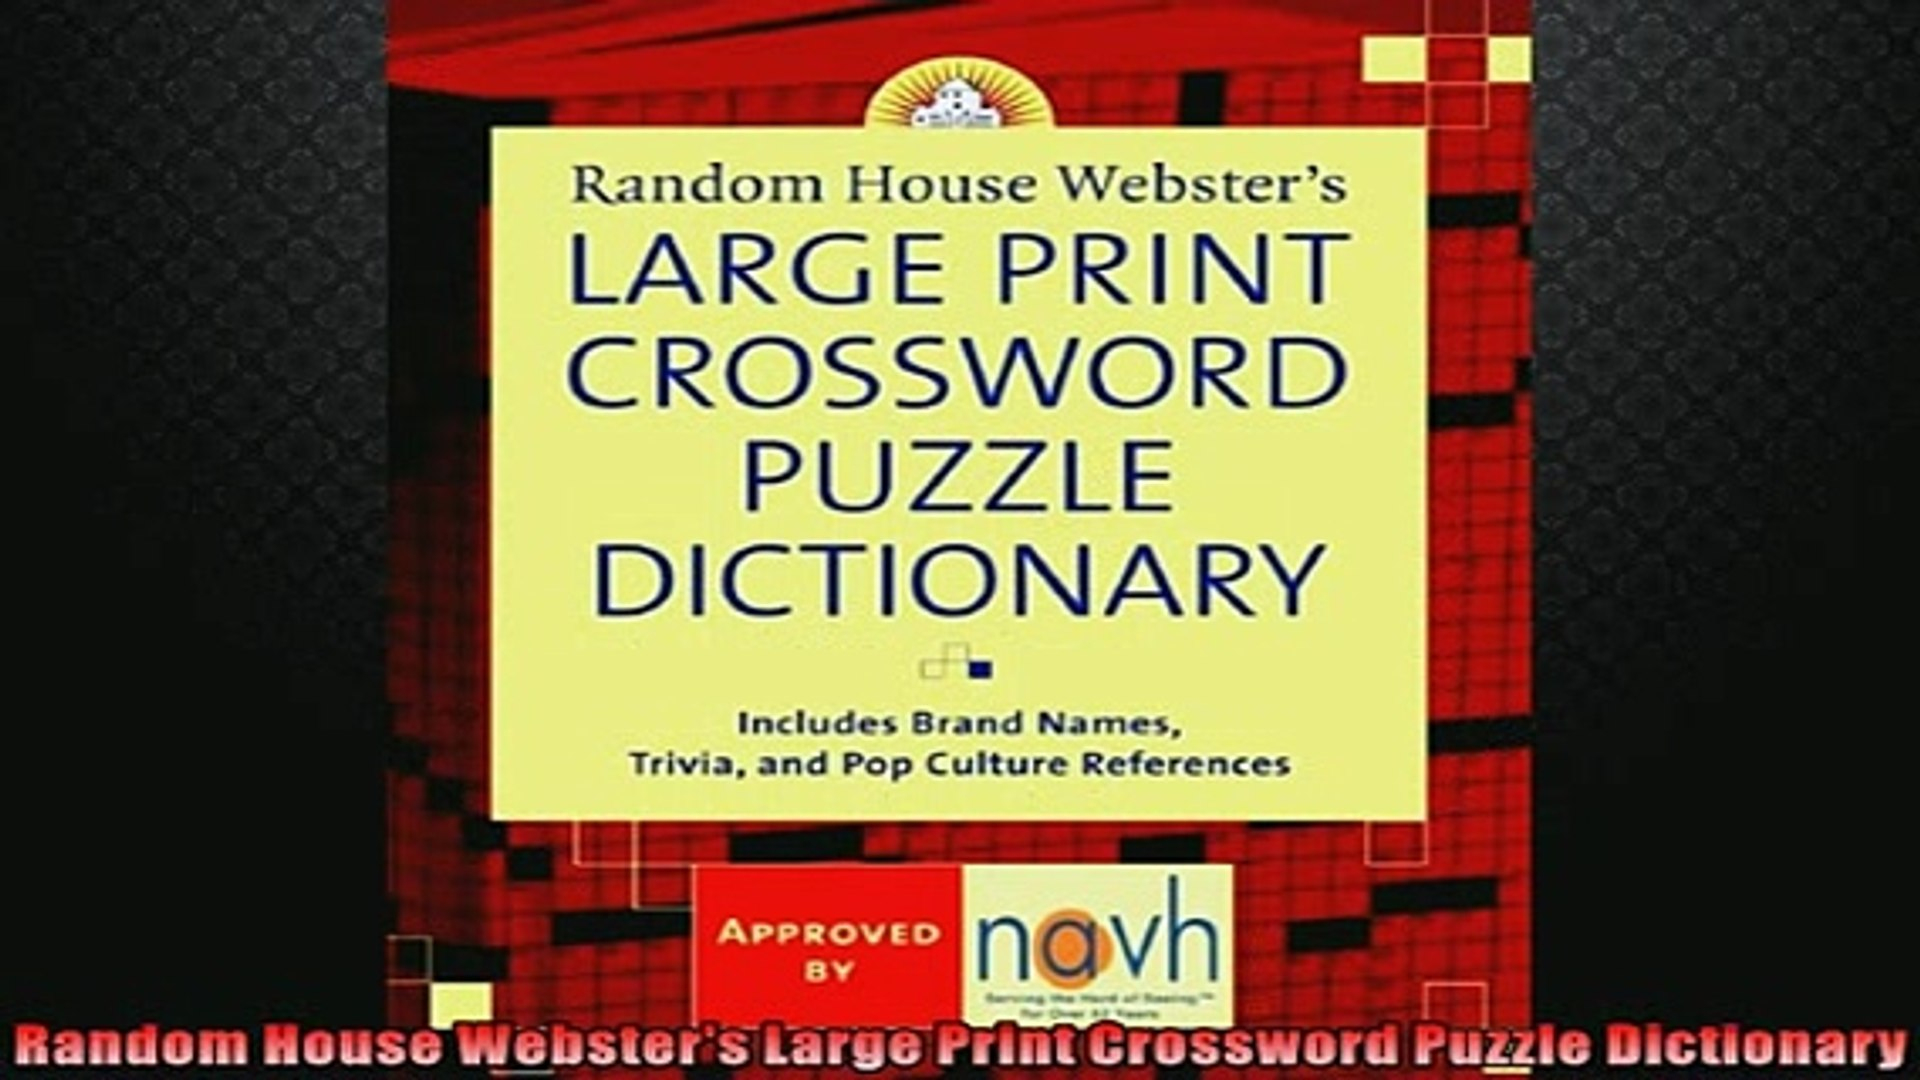 Free Download Random House Websters Large Print Crossword Puzzle - Large Print Crossword Puzzle Dictionary